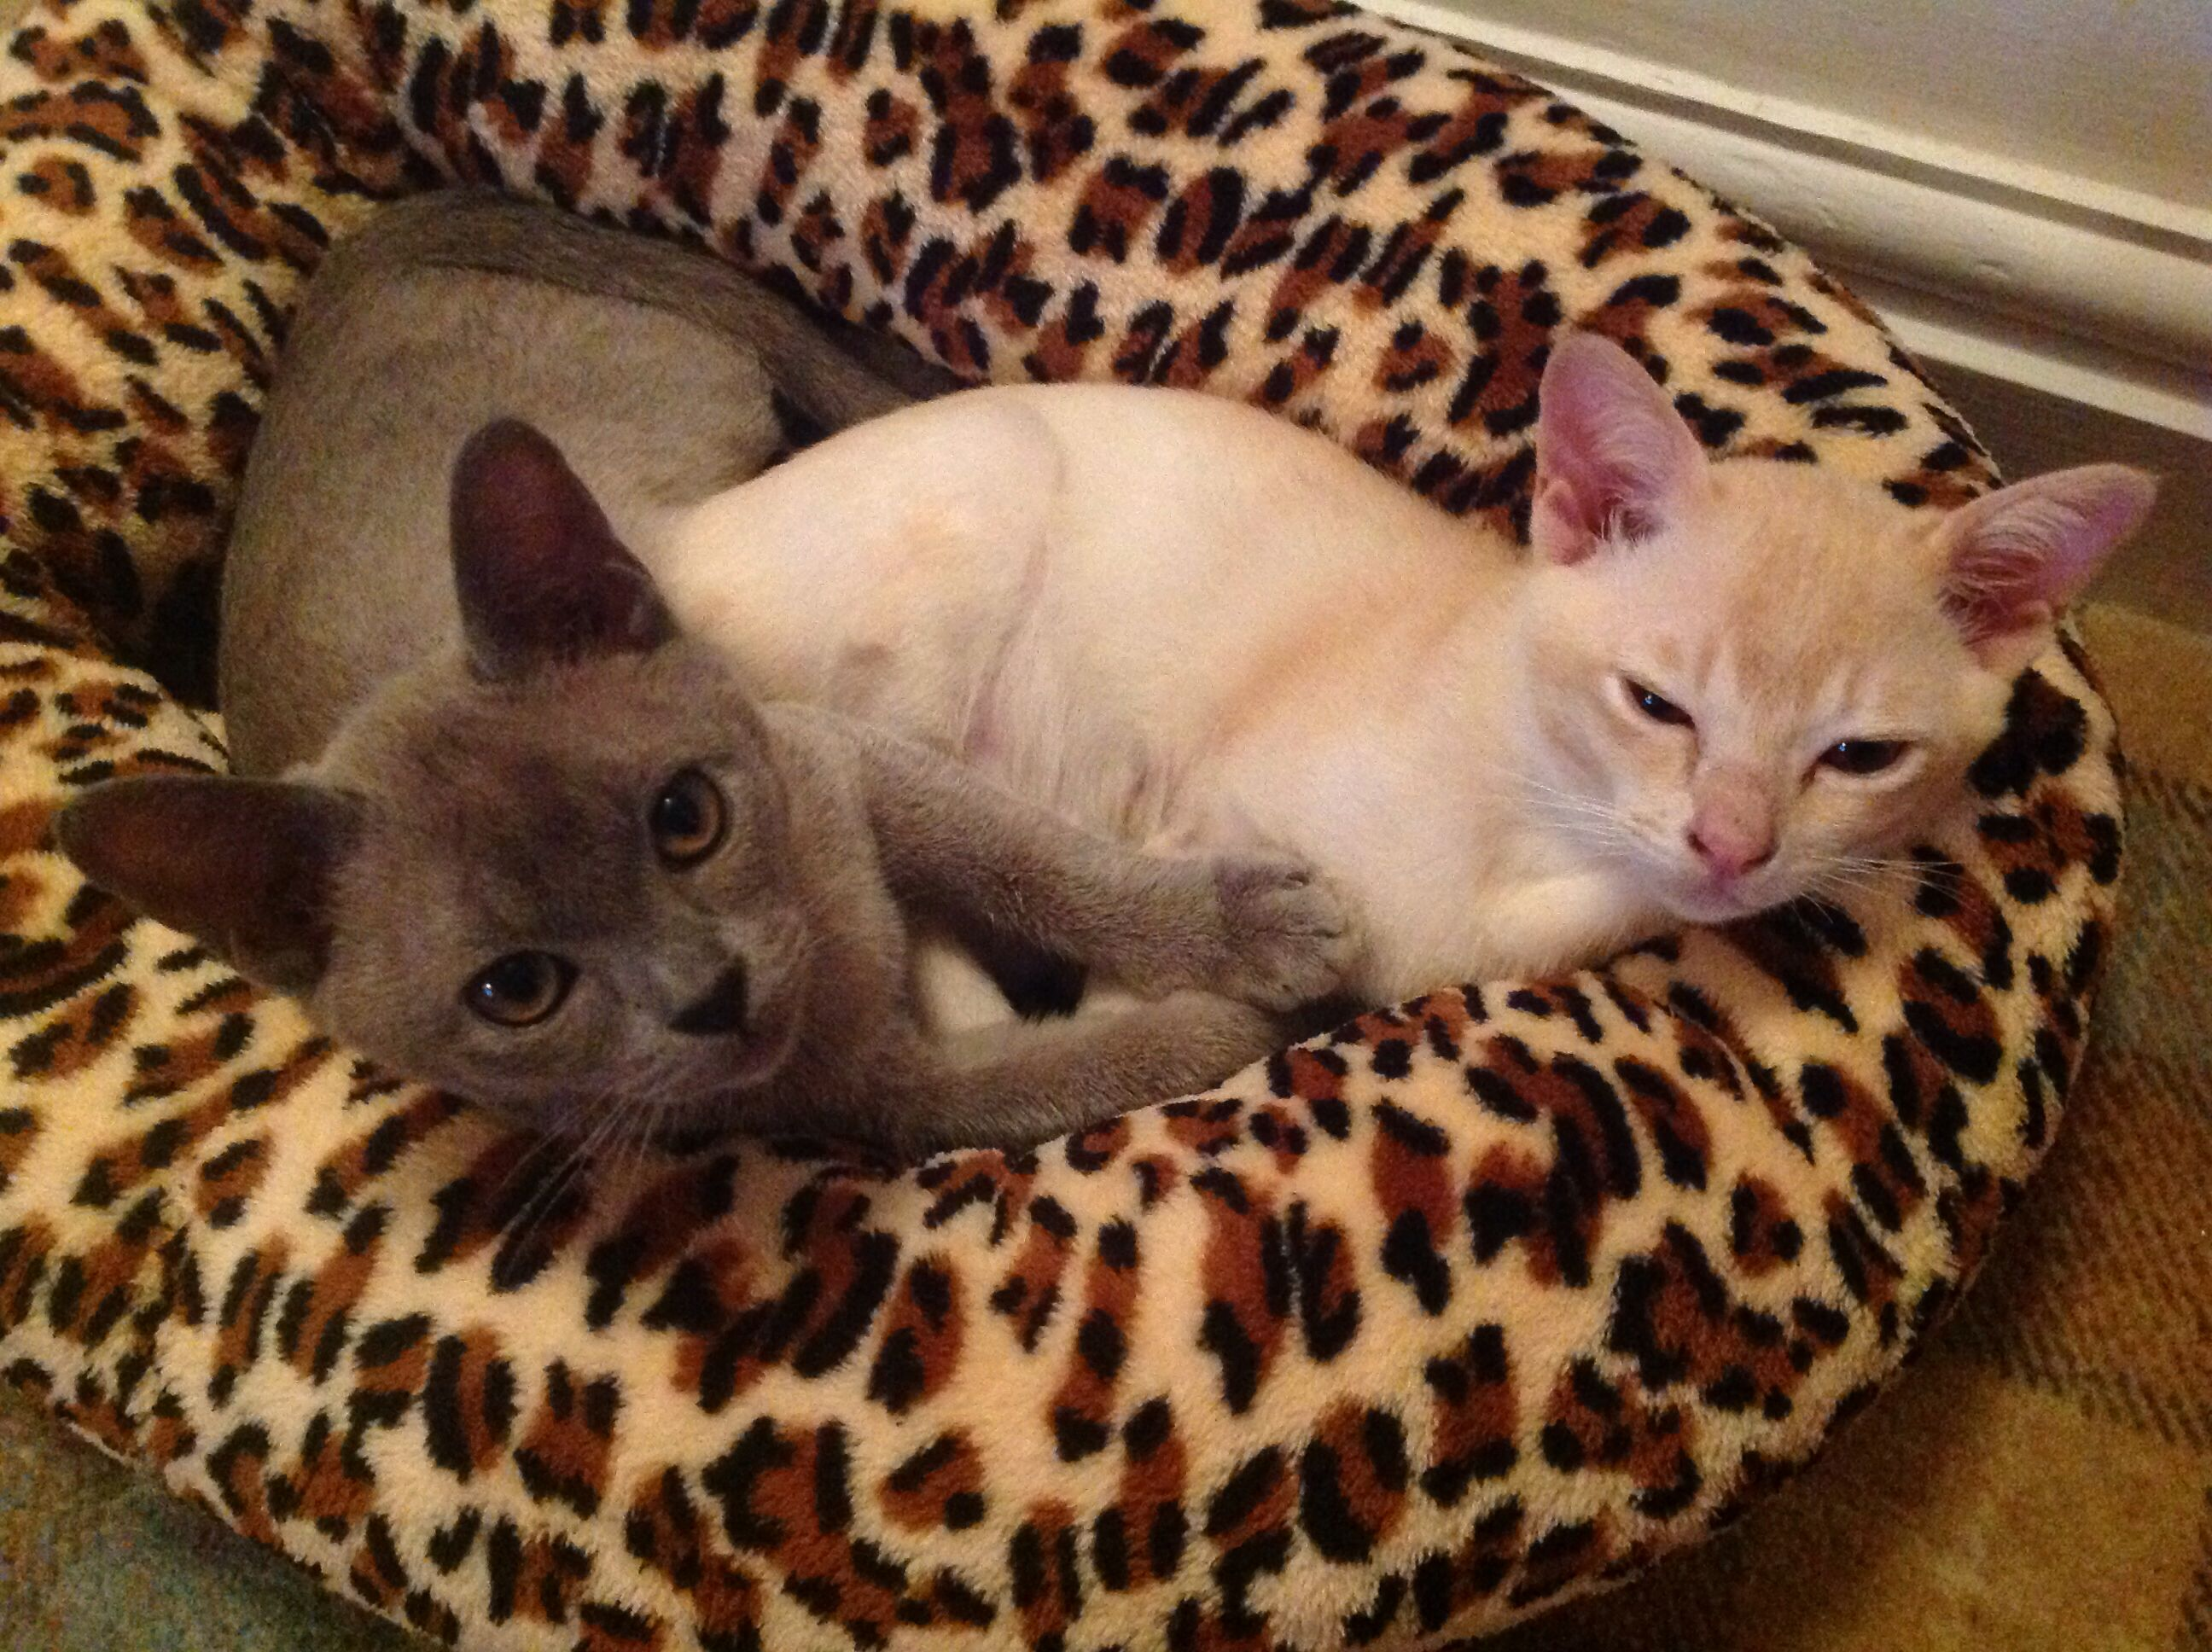 My blue and cream Burmese kittens, aged four months